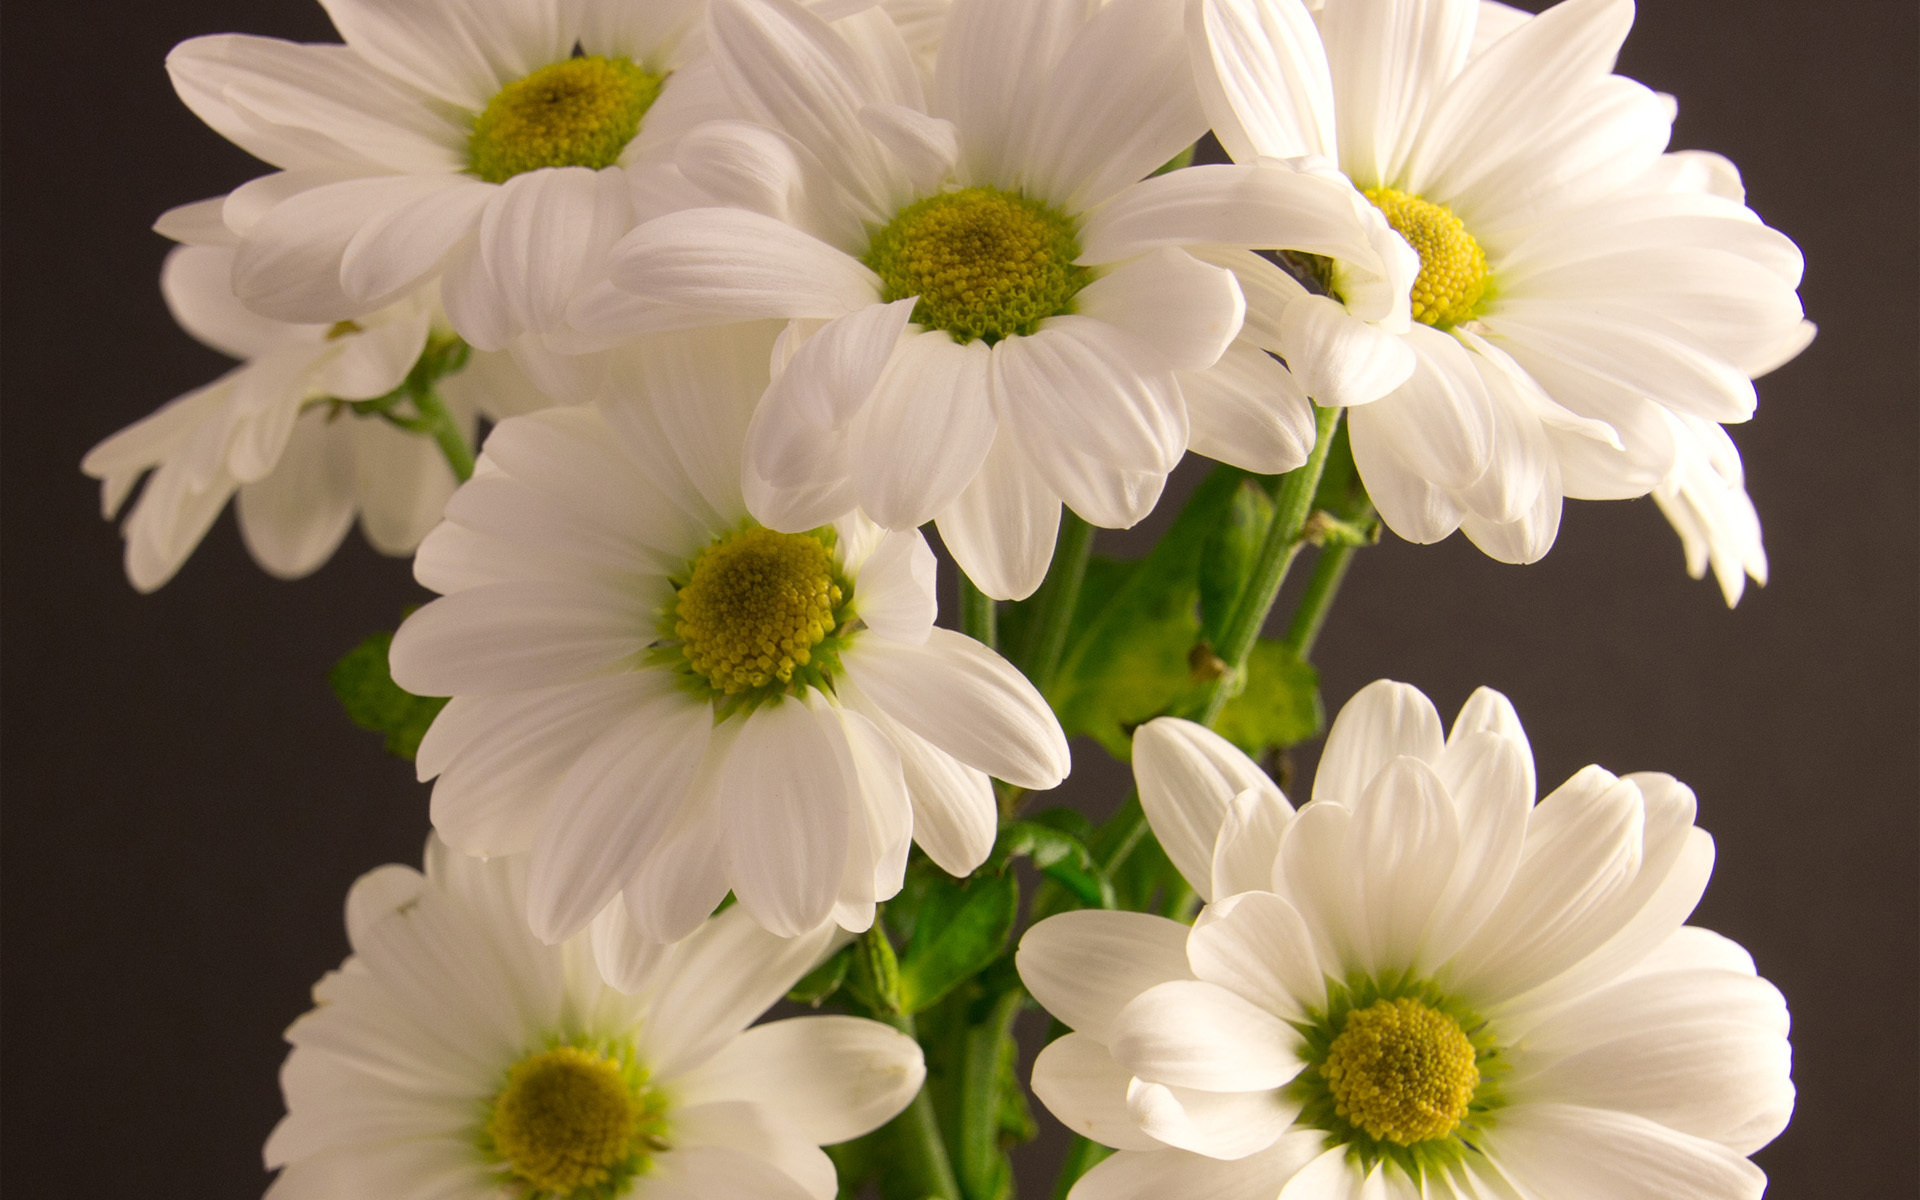 Bouquet chrysanthemum white flower wallpaper | 1920x1200 ...